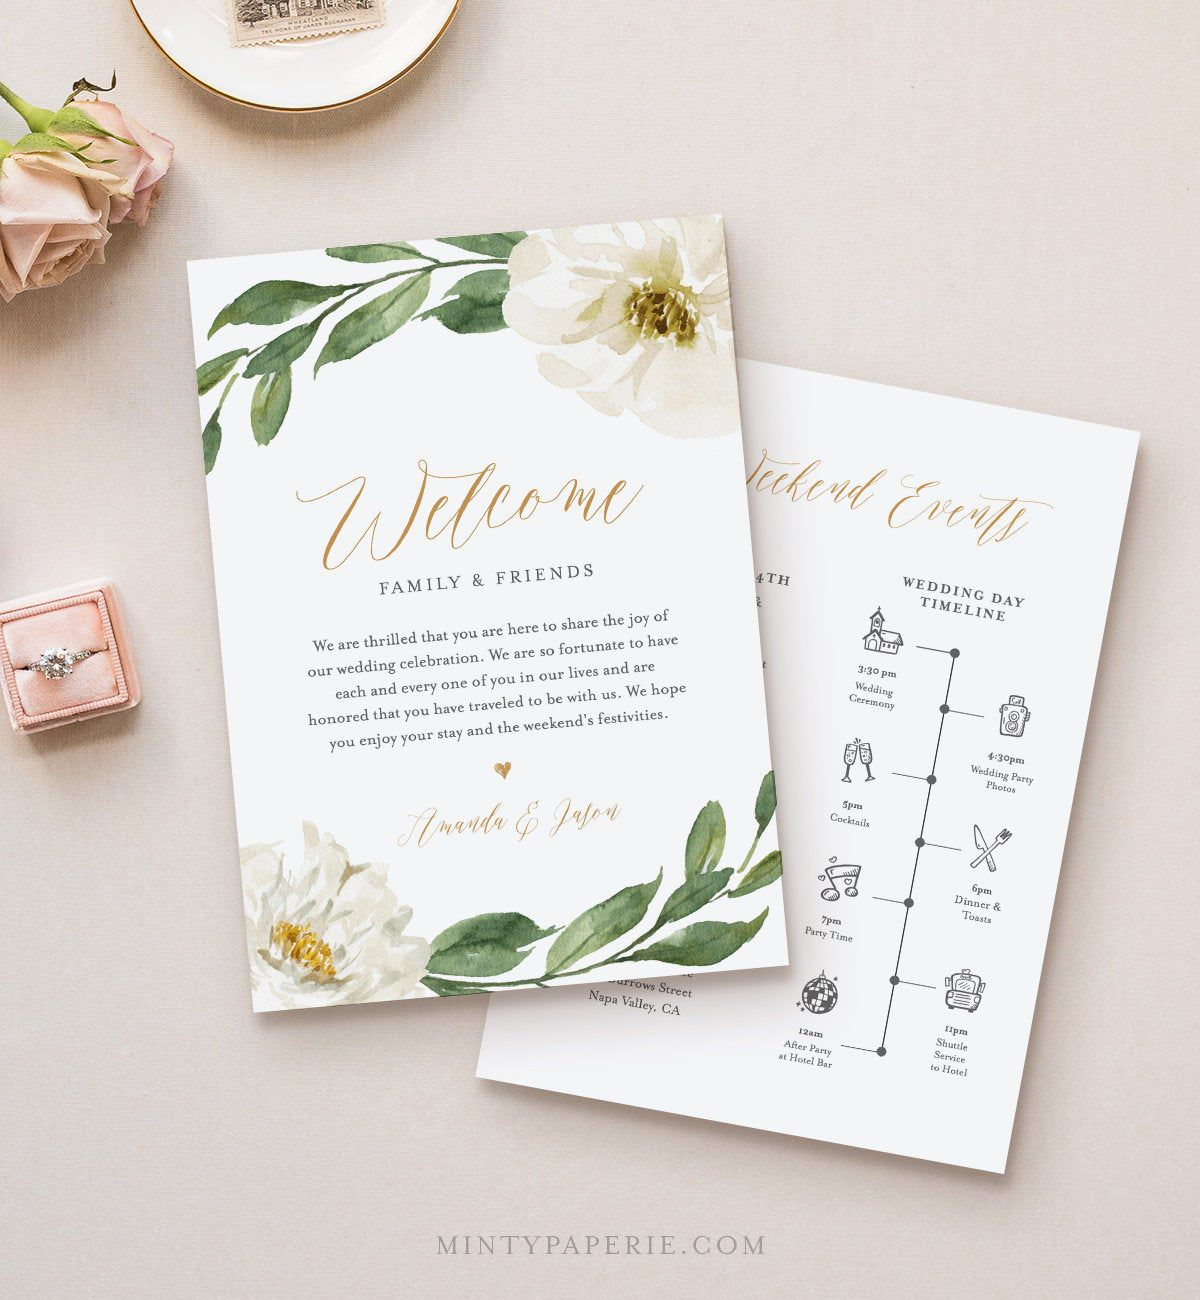 008 Outstanding Wedding Welcome Letter Template Download High Definition Full